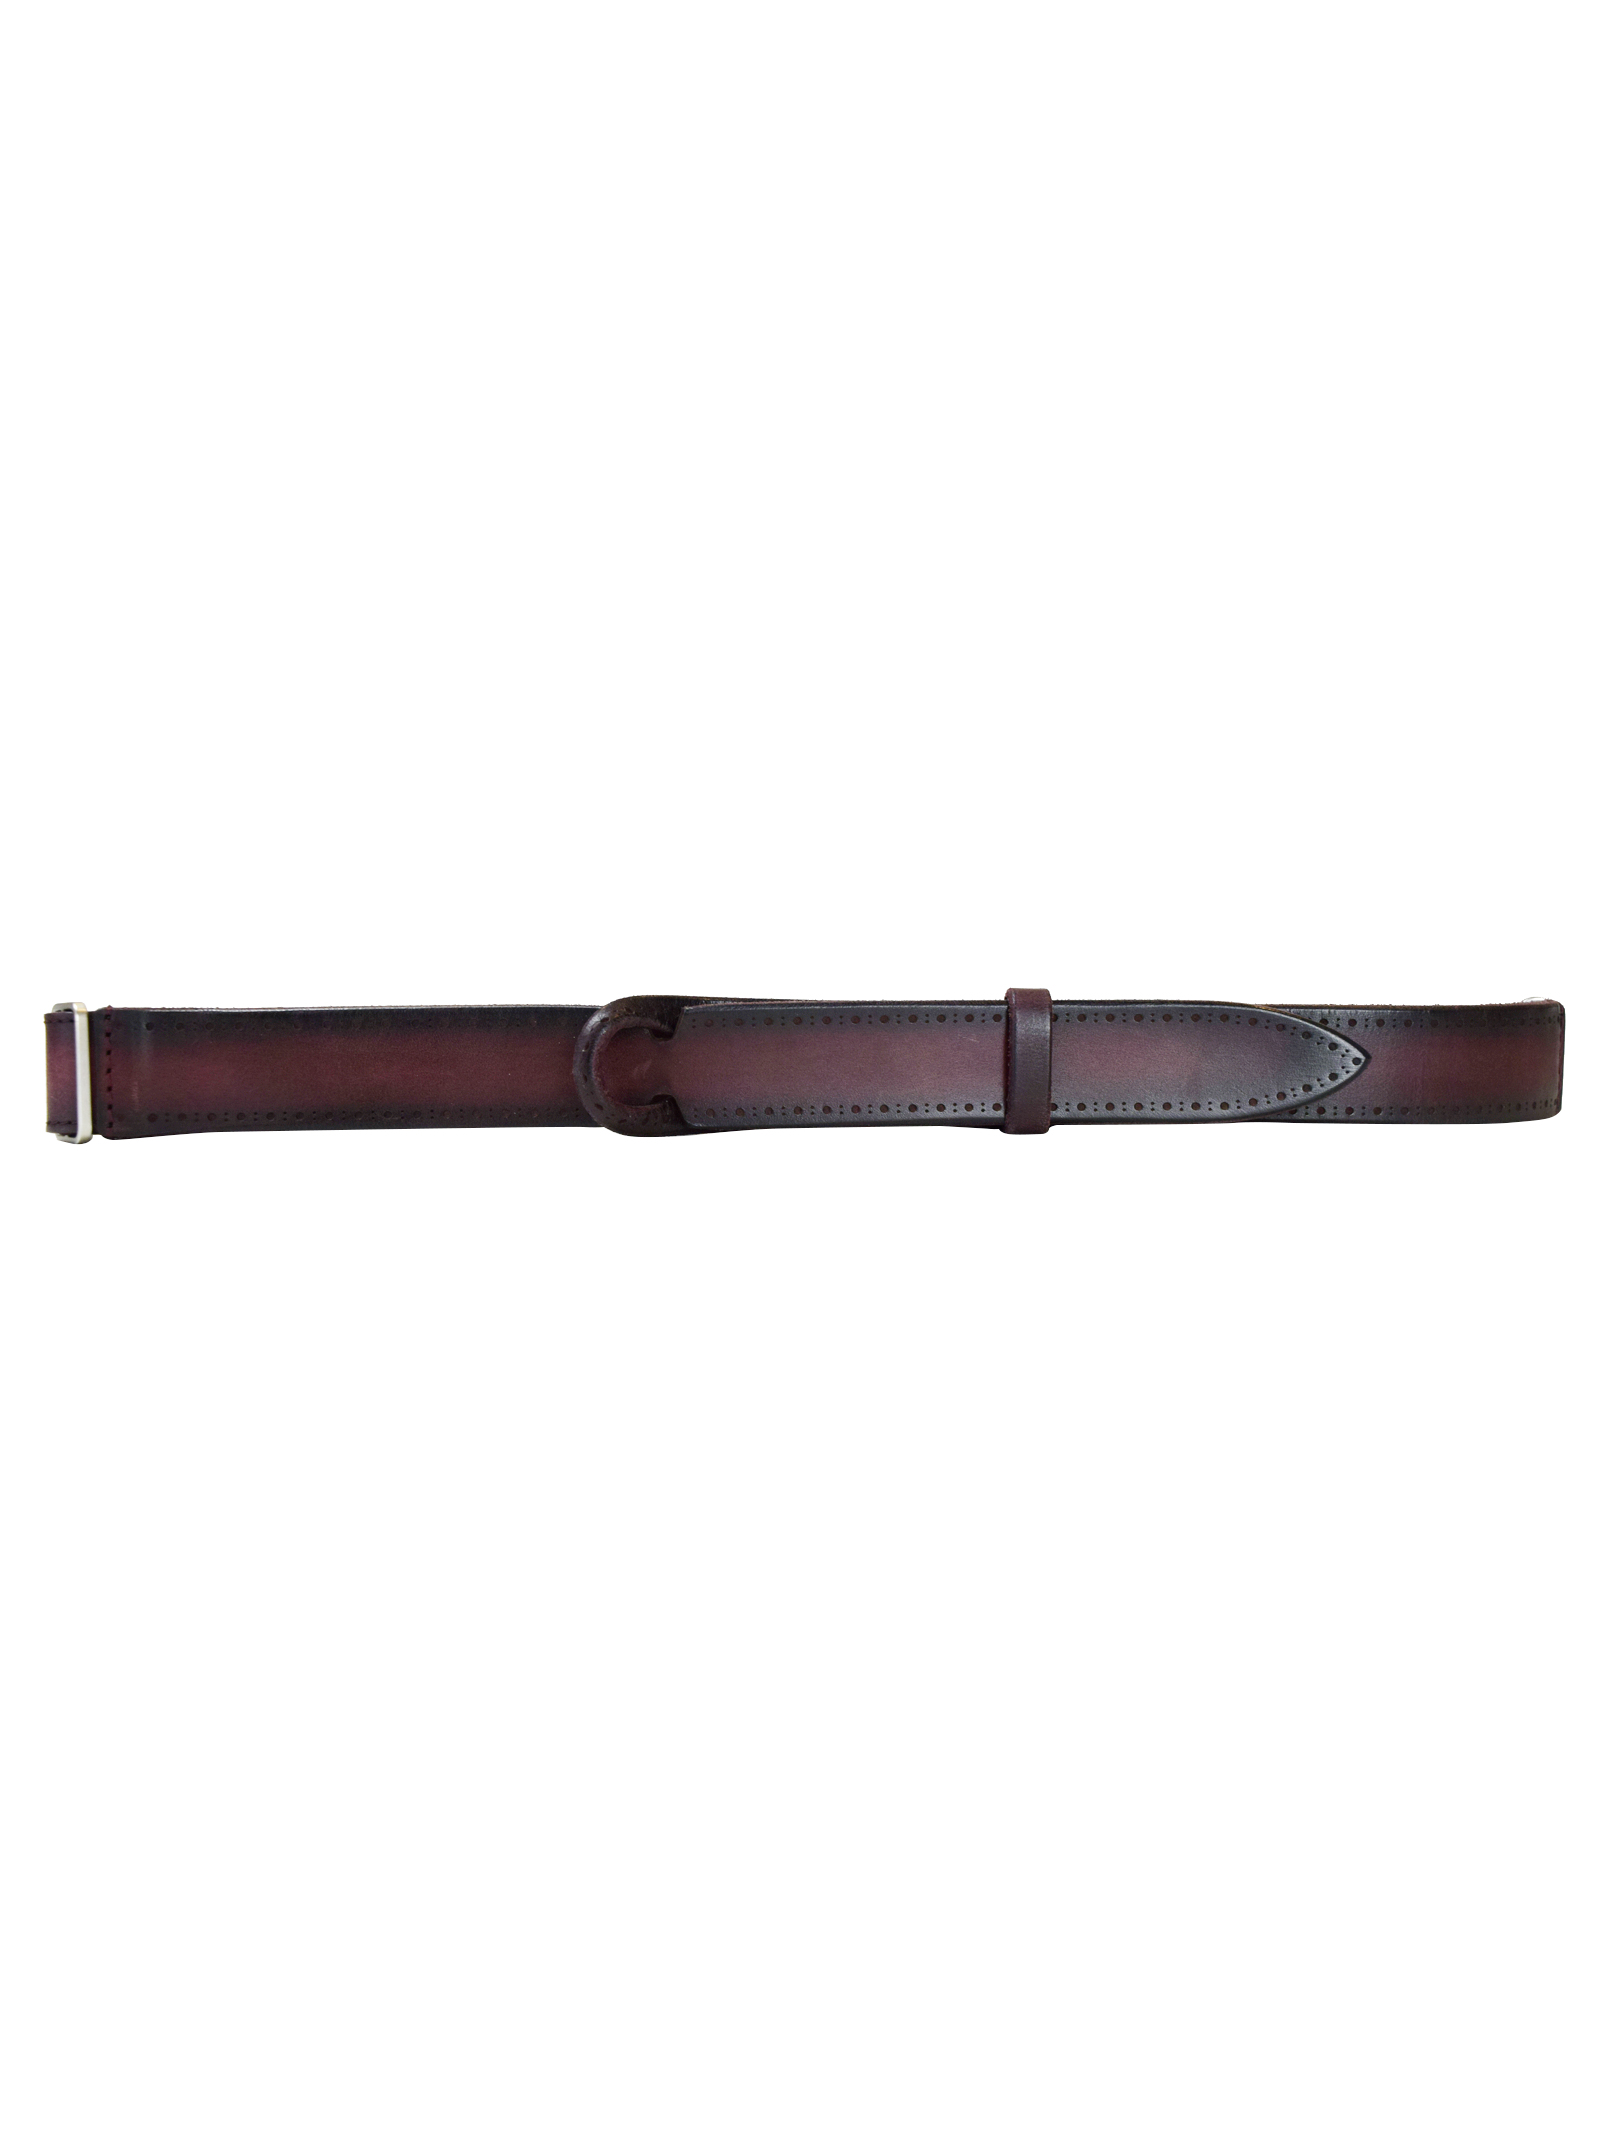 NO BUCKLE by Orciani |  | 24BORDEAUX